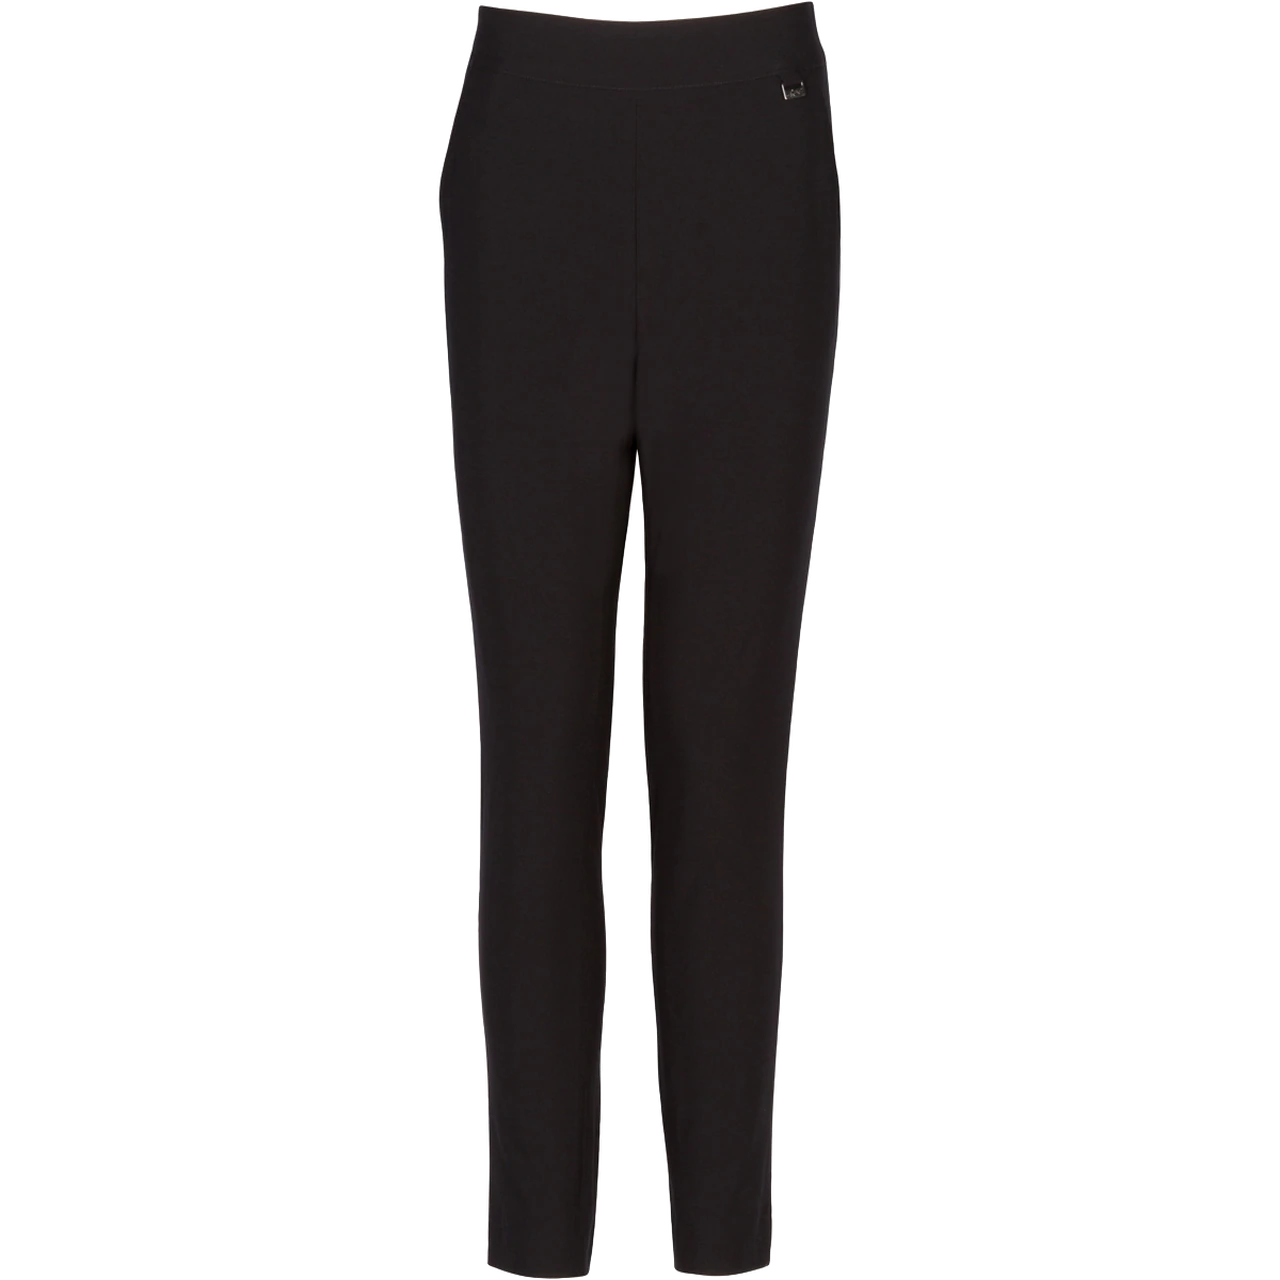 Greg Norman ML75 Ladies Pull-On Stretch Pants - Black